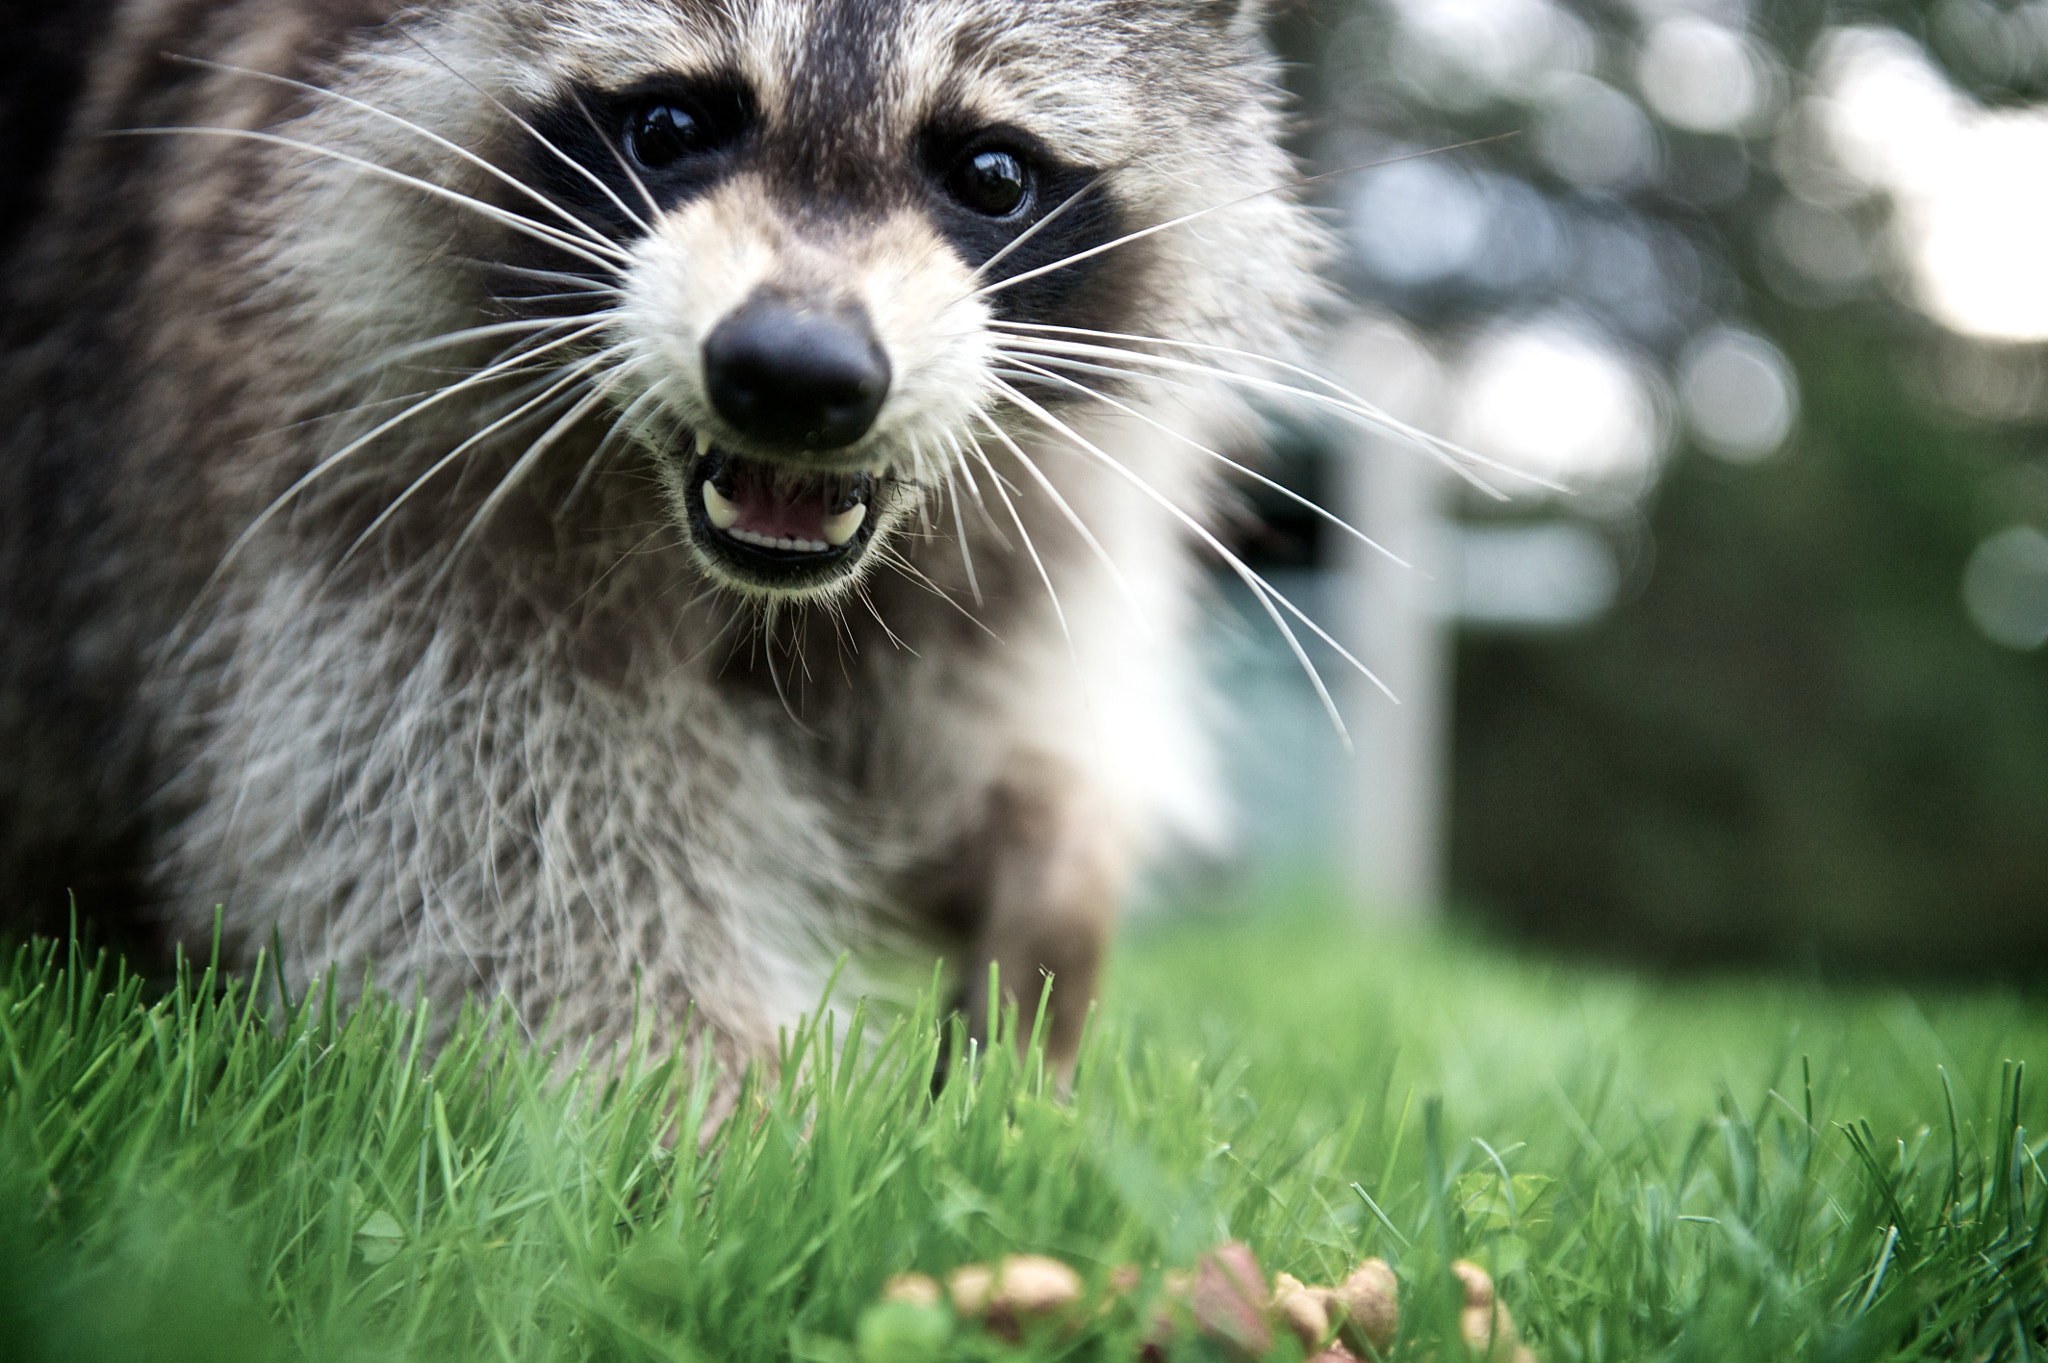 Photograph Boo the Raccoon*7437 by Mark Shannon on 500px